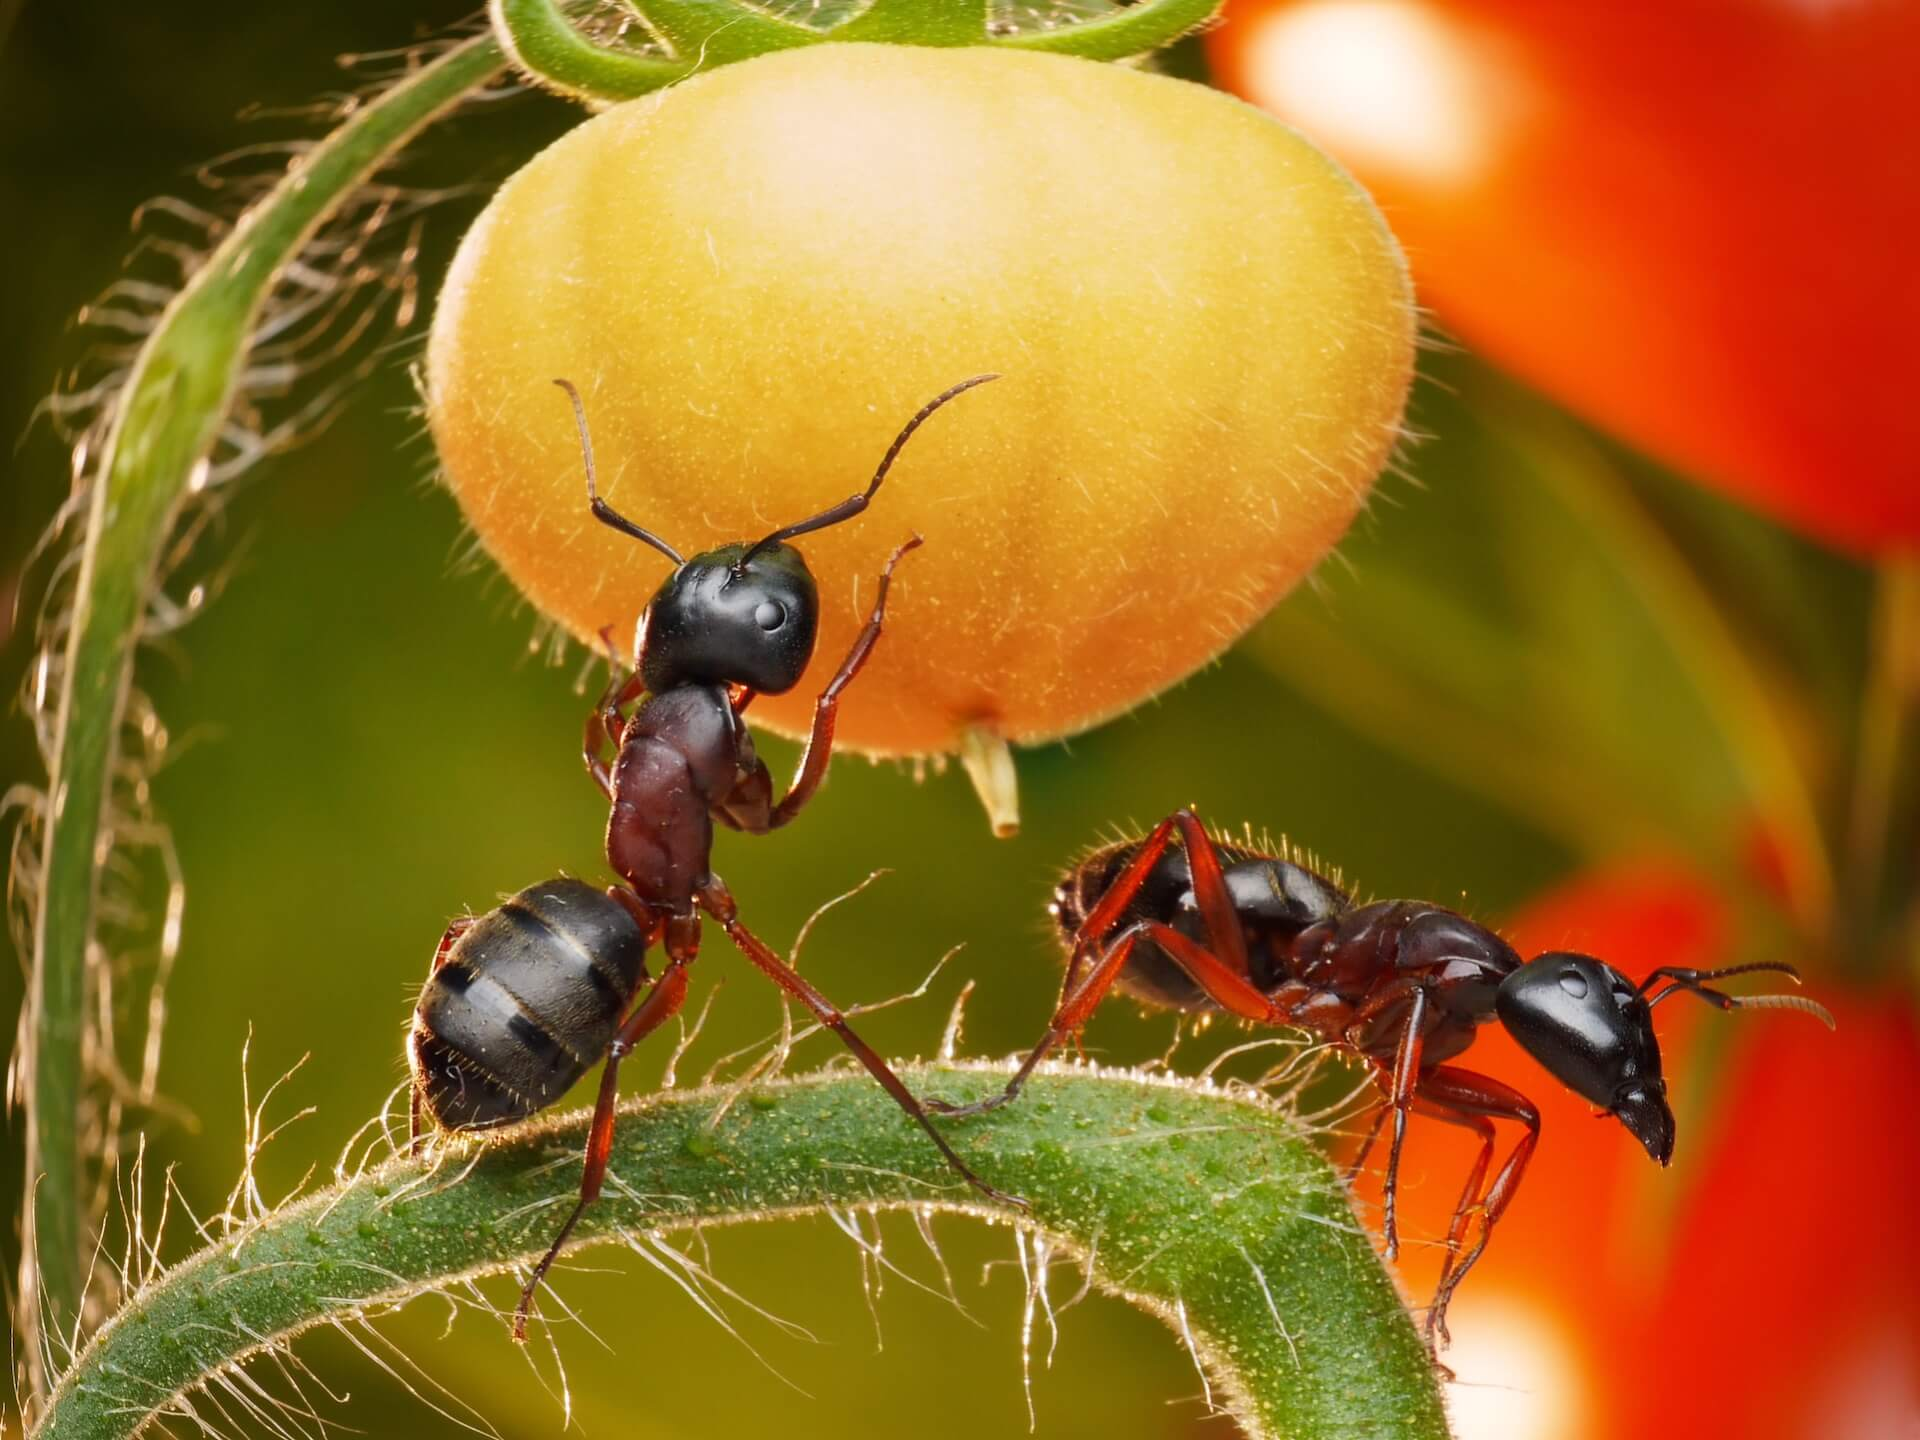 two ants on the tomato plants